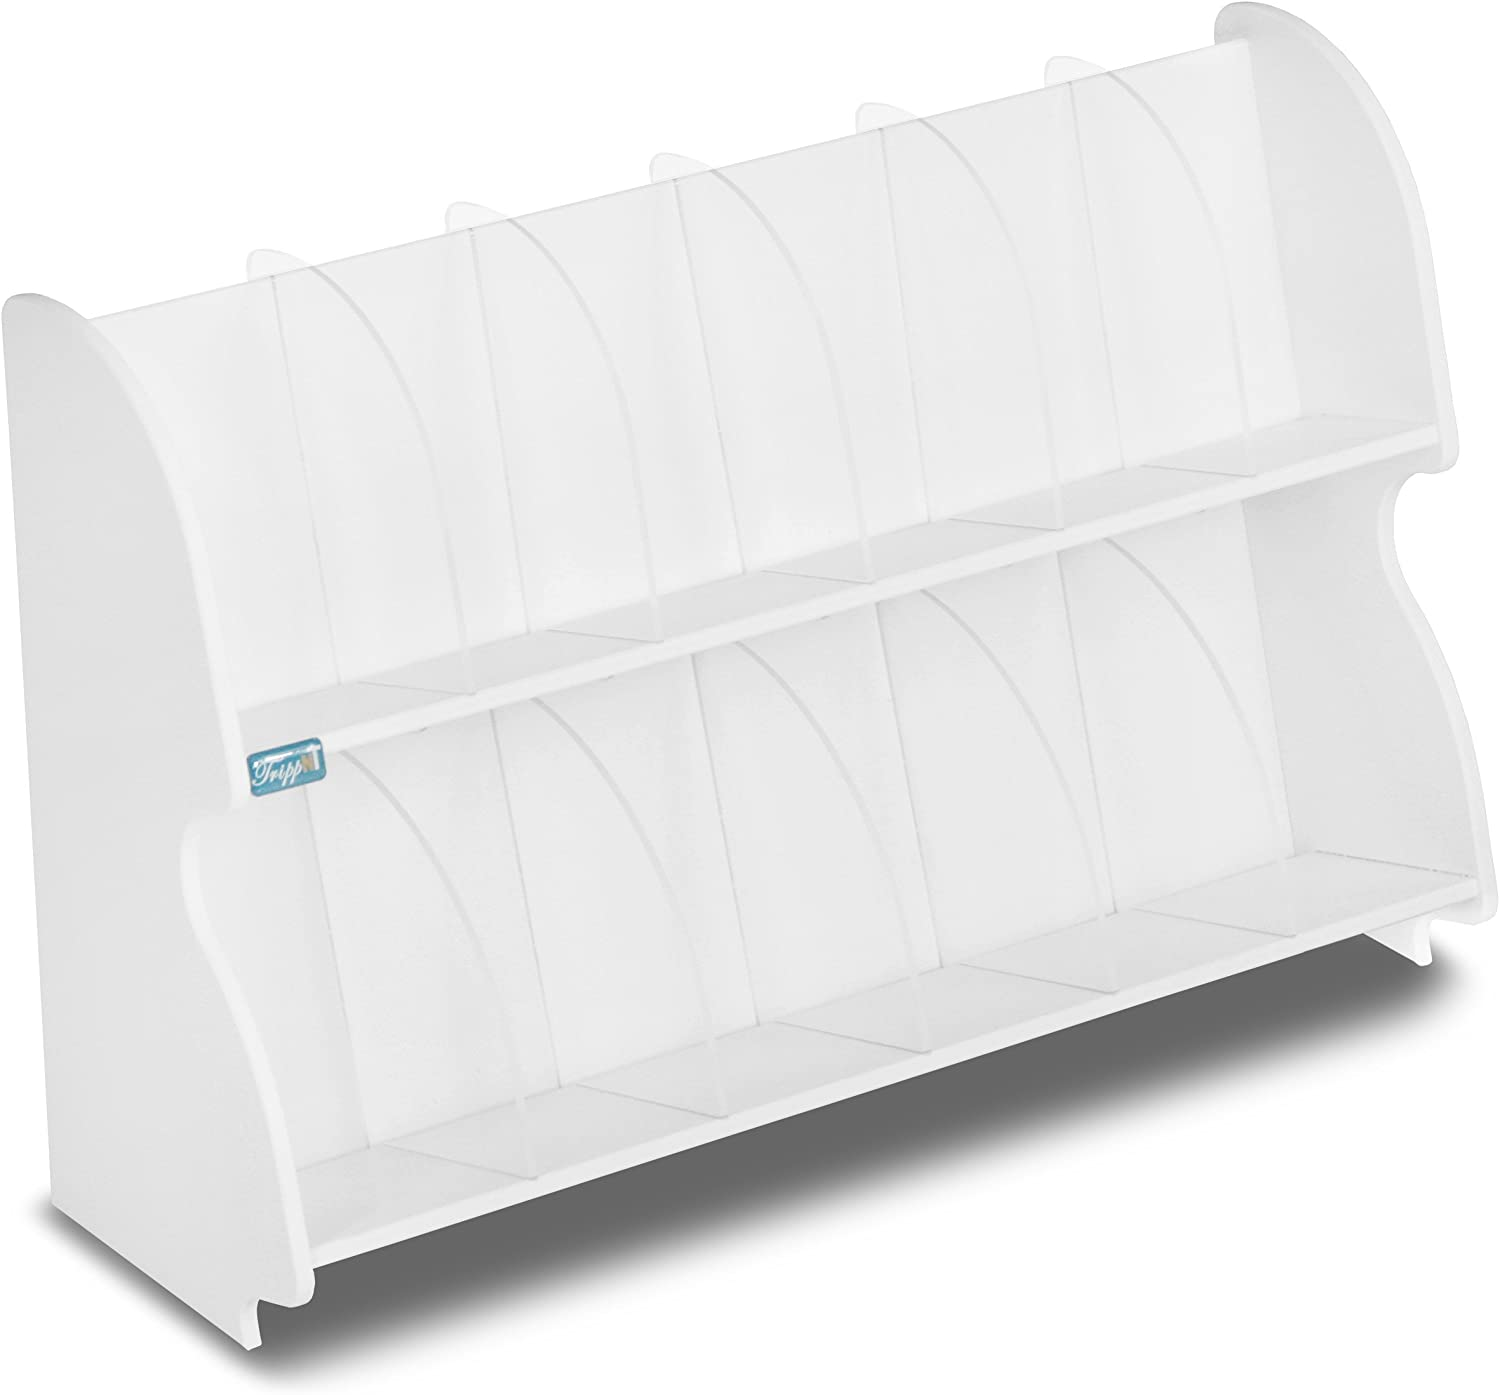 TrippNT 51069 PVC Plastic Double Adjustable Shelf with 10 Dividers, 18-Inch Width x 12-Inch Height x 6-Inch Depth